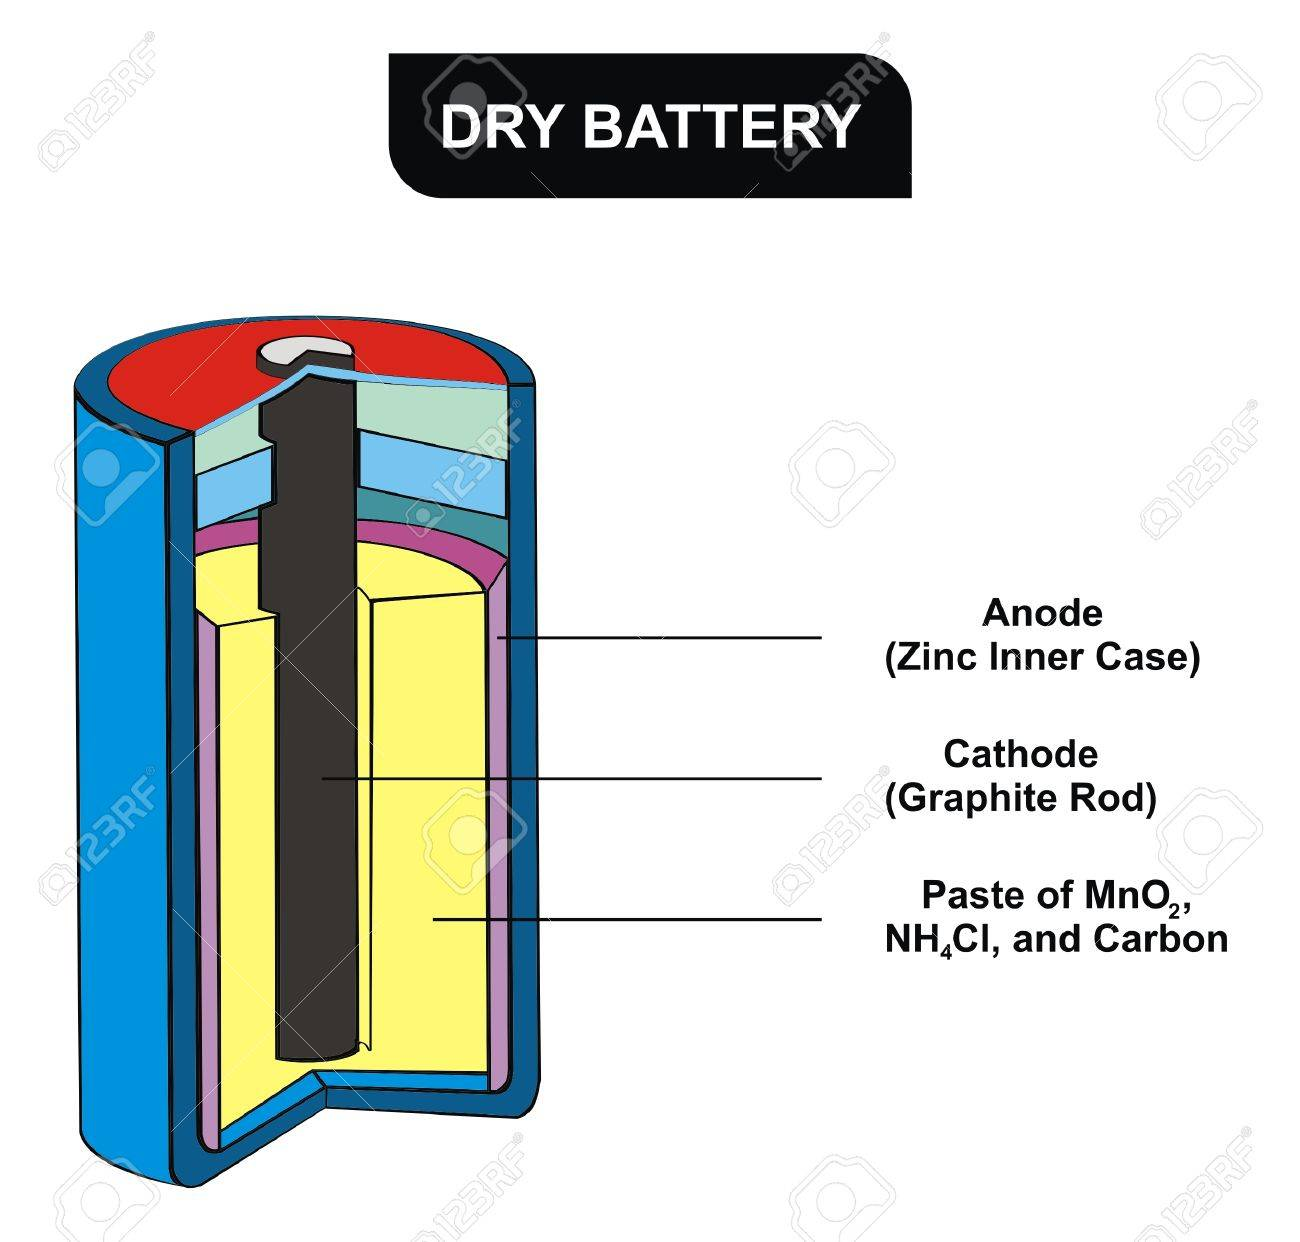 Cell battery diagram example electrical wiring diagram cell battery diagram images gallery ccuart